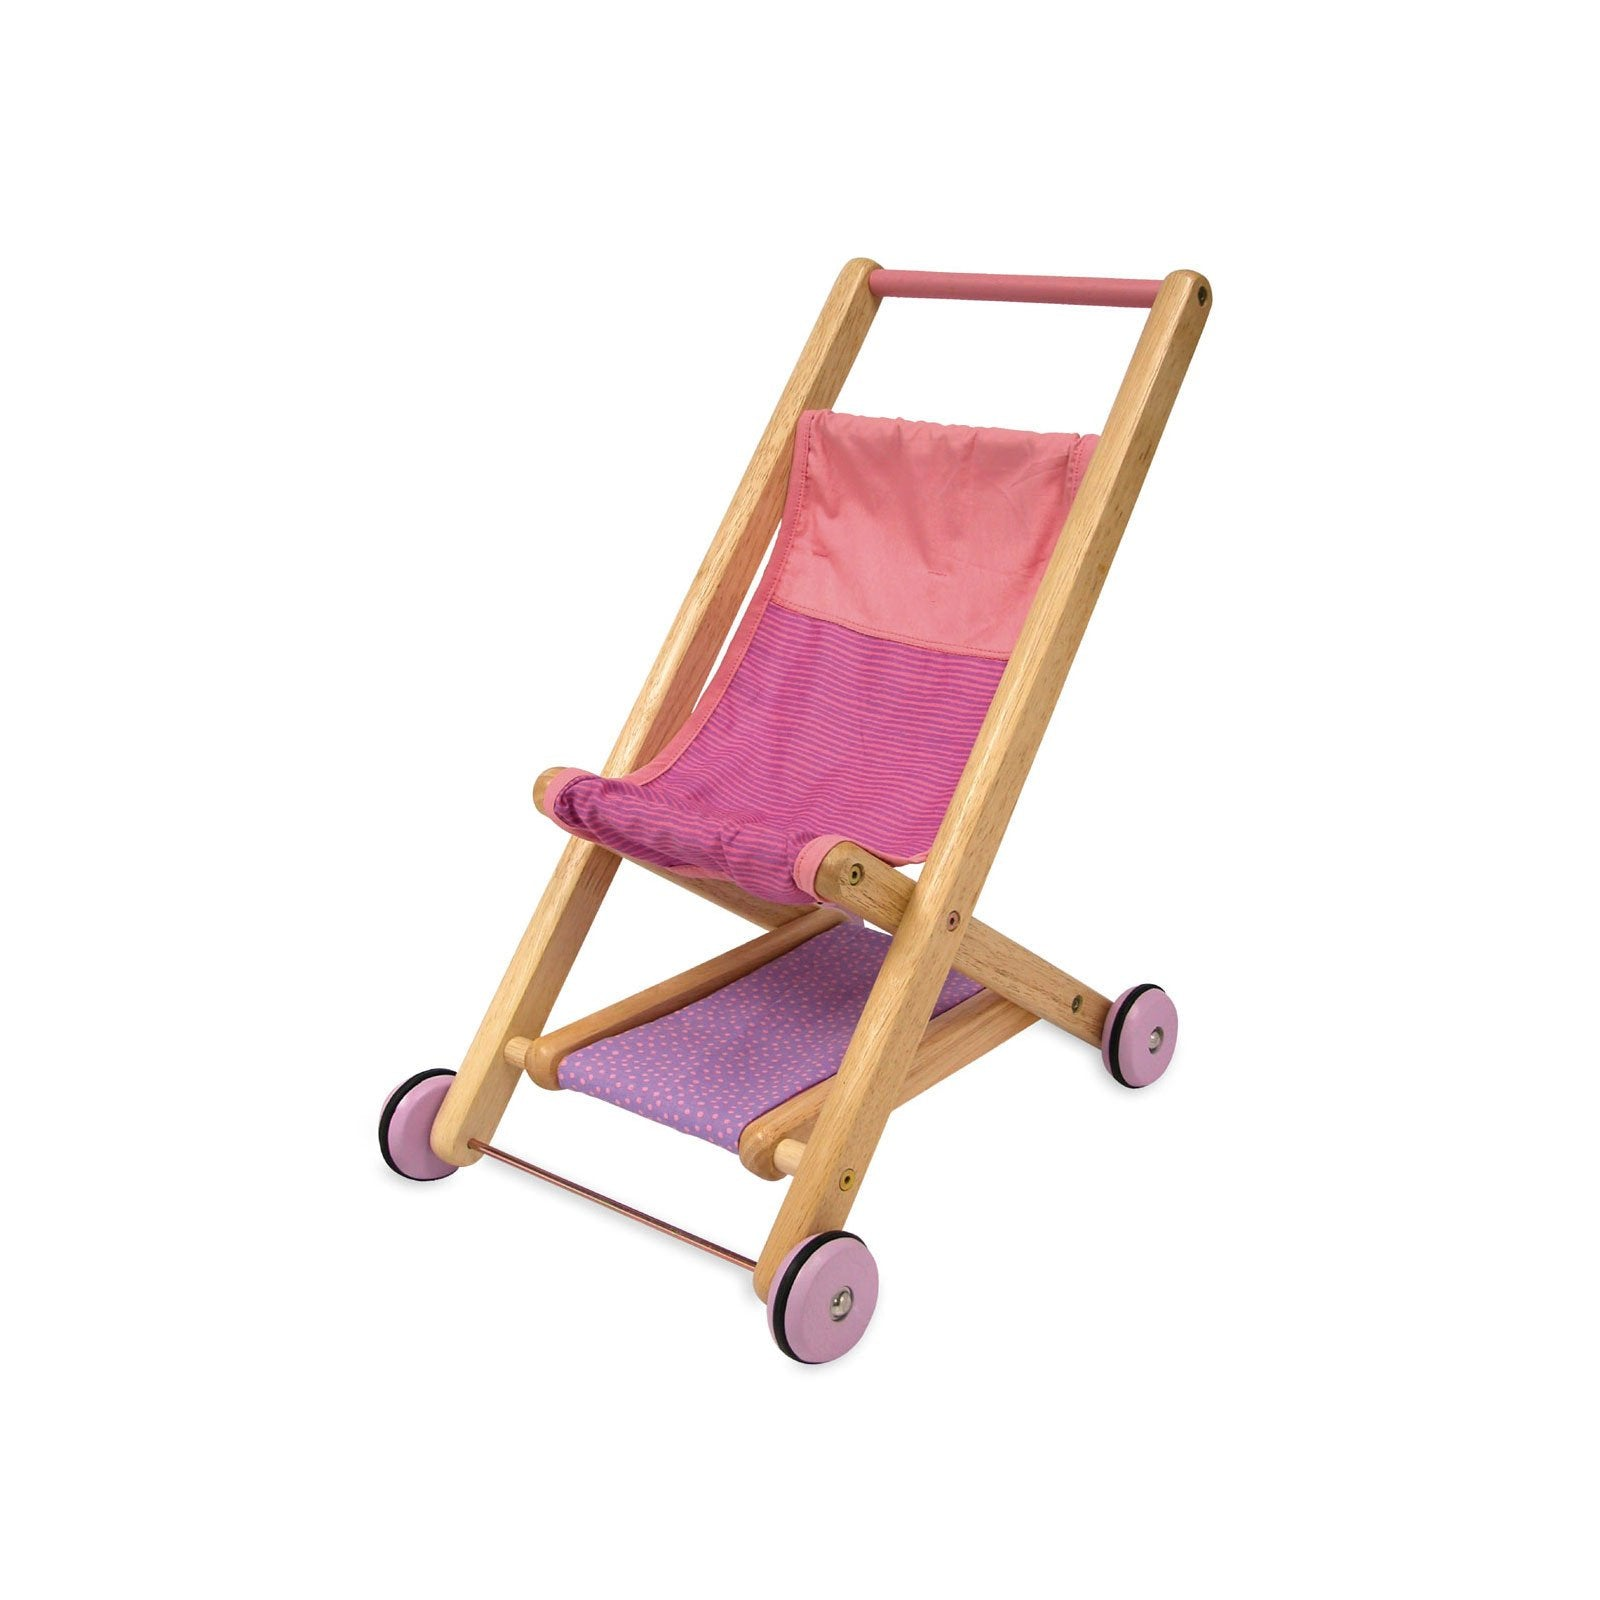 Wooden Doll Stroller from I'm Toy Im Toy Pretend Play at Little Earth Nest Eco Shop